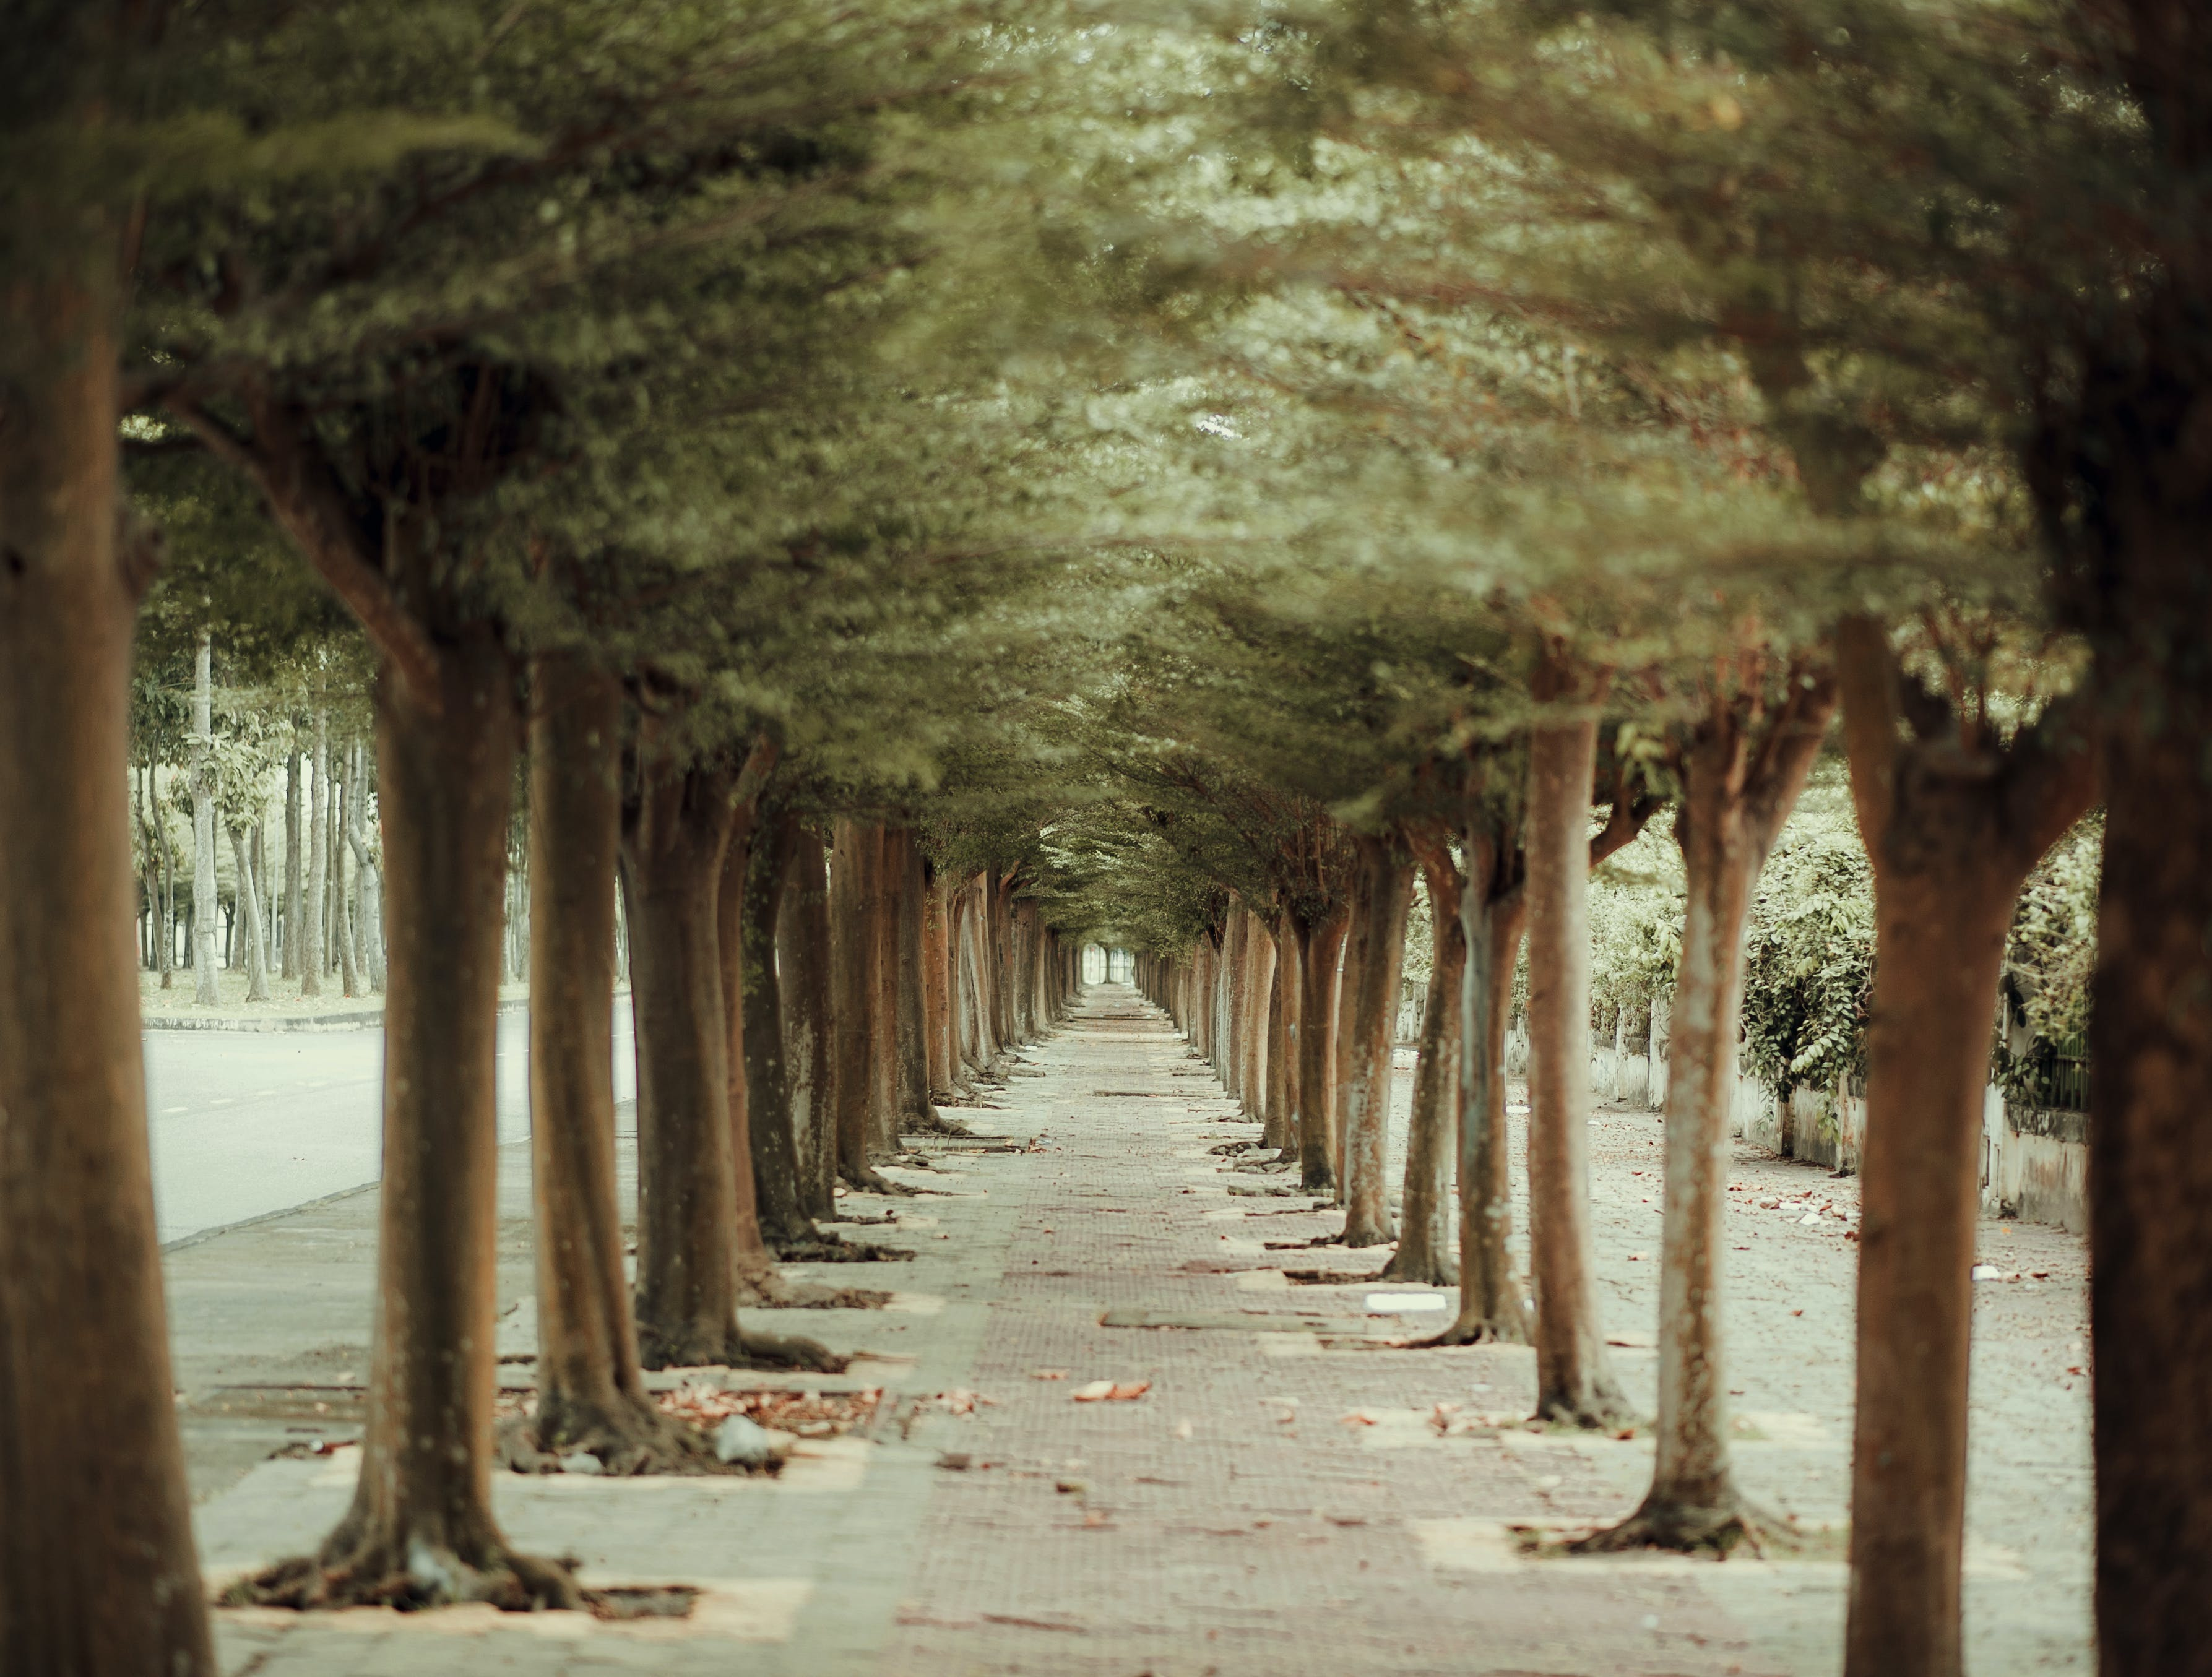 Trees in Straight Line Beside Pathway